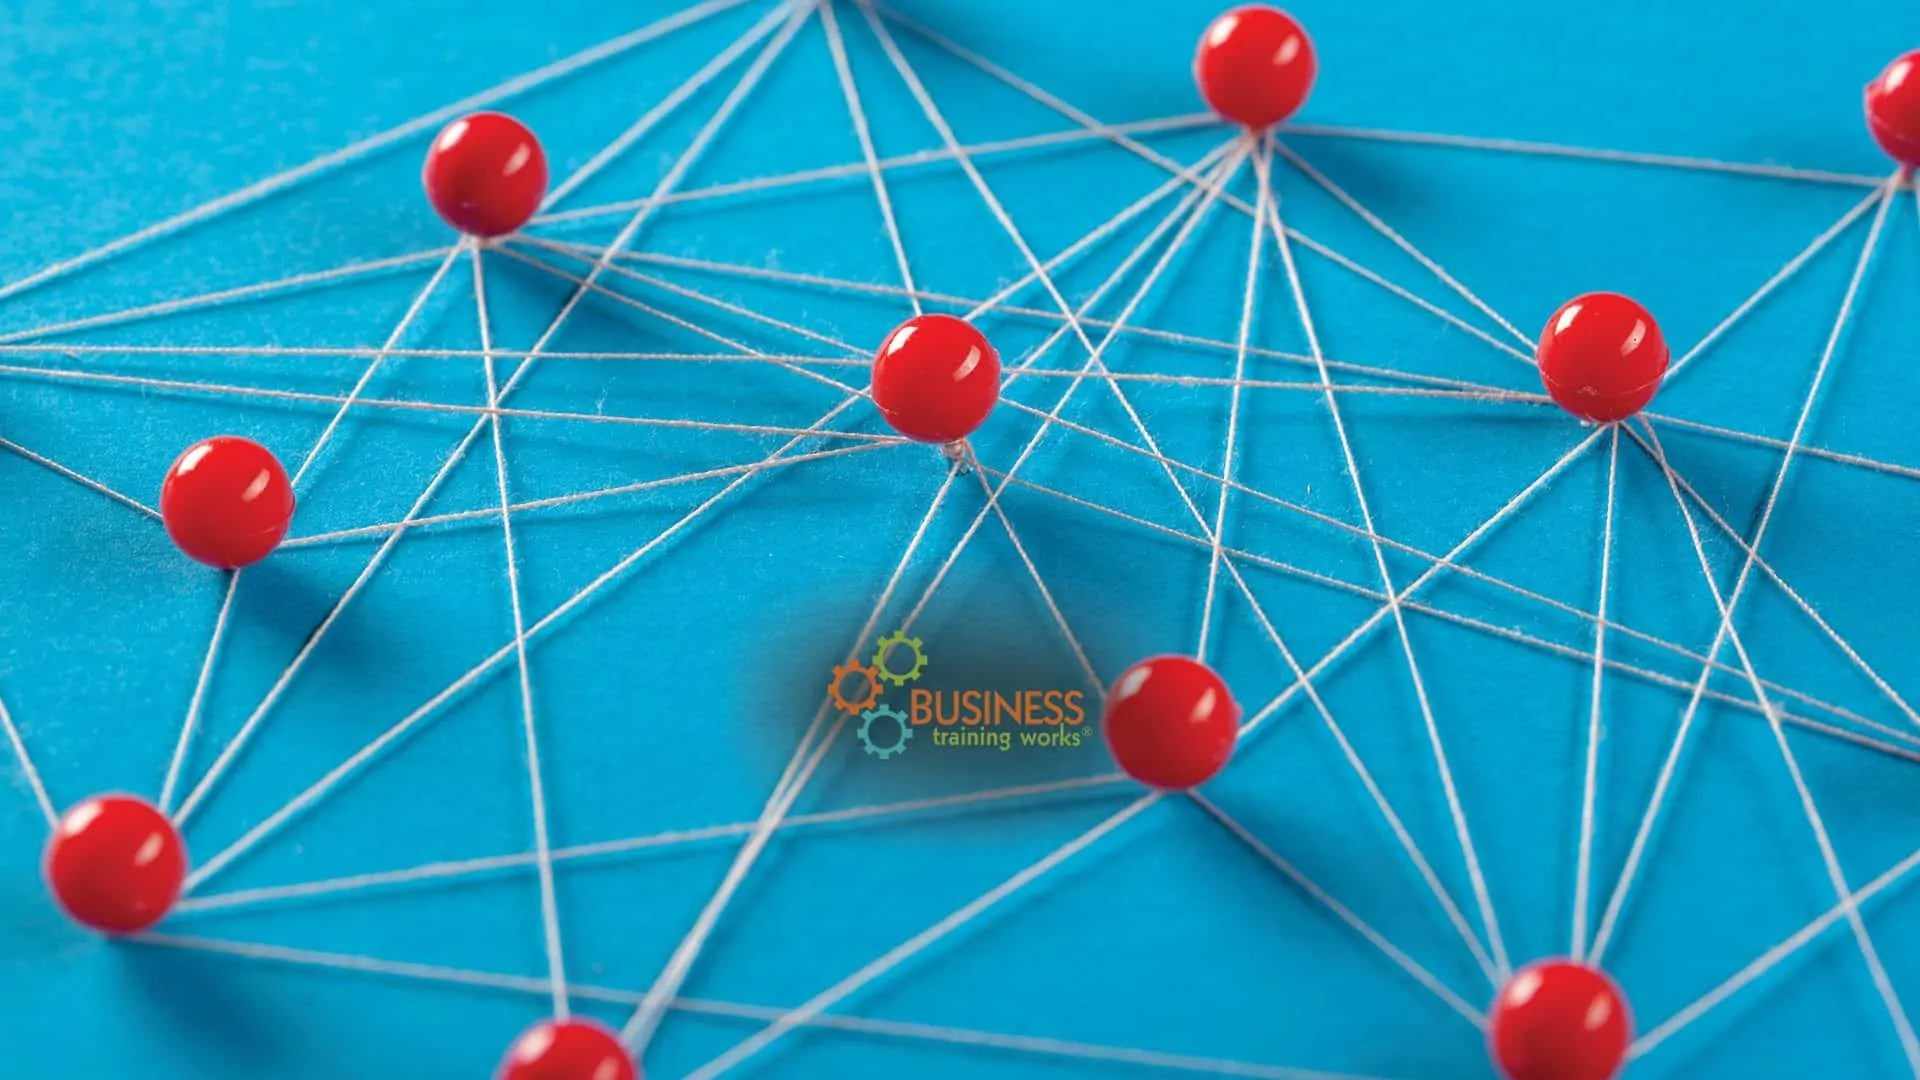 Online Business Networking Course